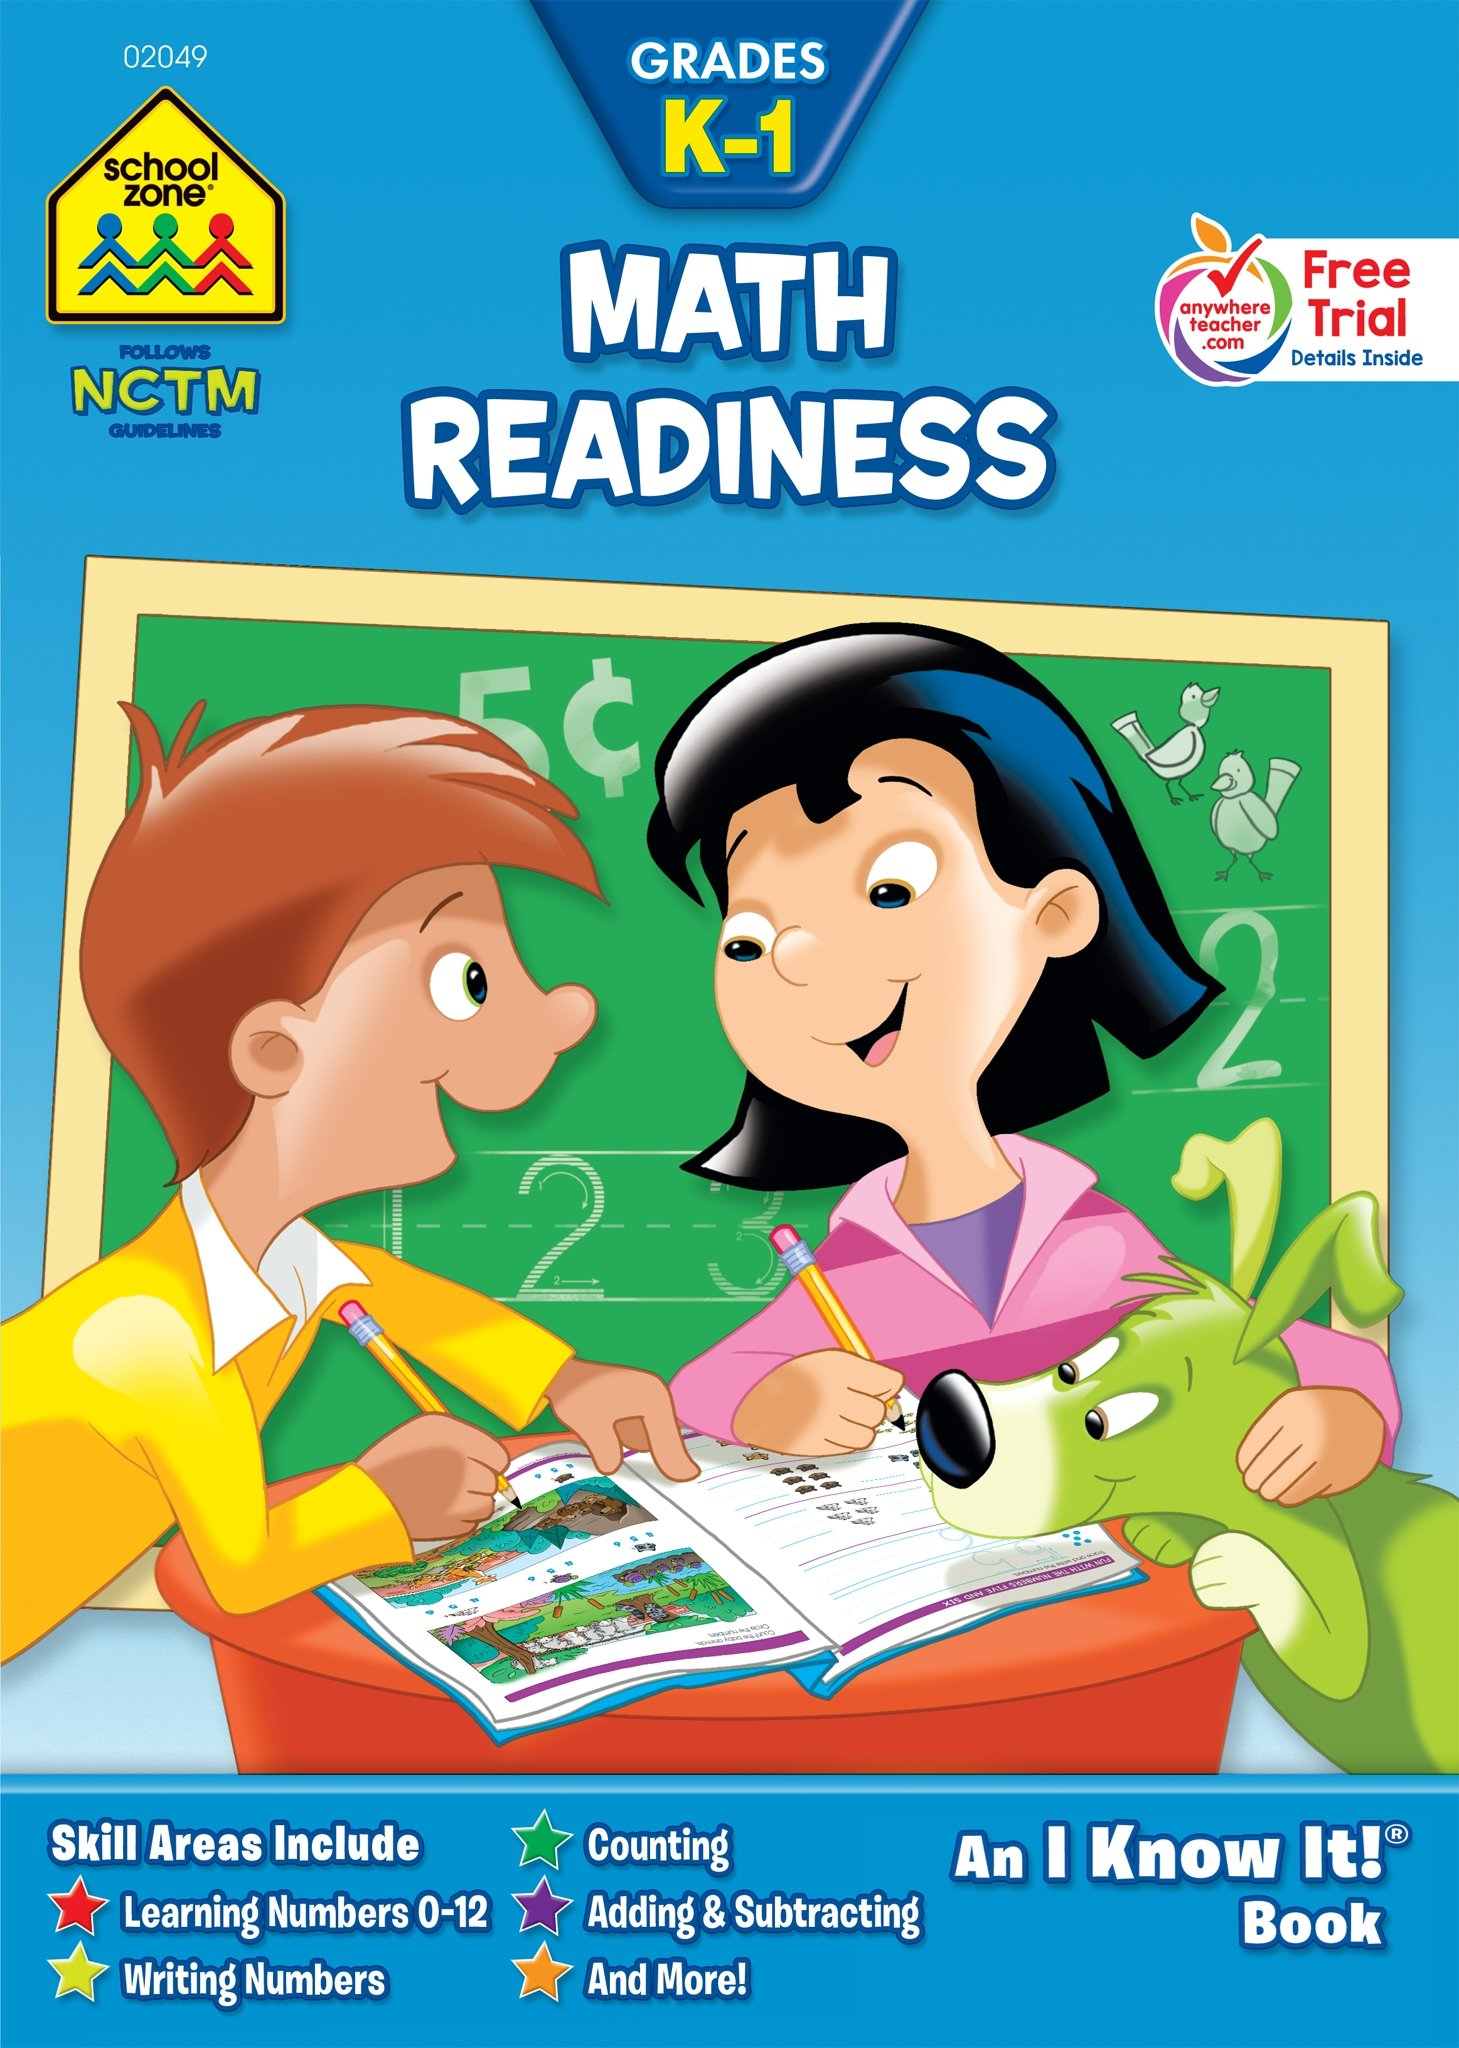 SCHOOL ZONE - Math Readiness K-1 Workbook, Grades Kindergarten thru 1st, Ages 4 to 6, I Know It!®, Numbers 0-12, Counting, Addition, Subtraction, Shapes, Tracing, and More!